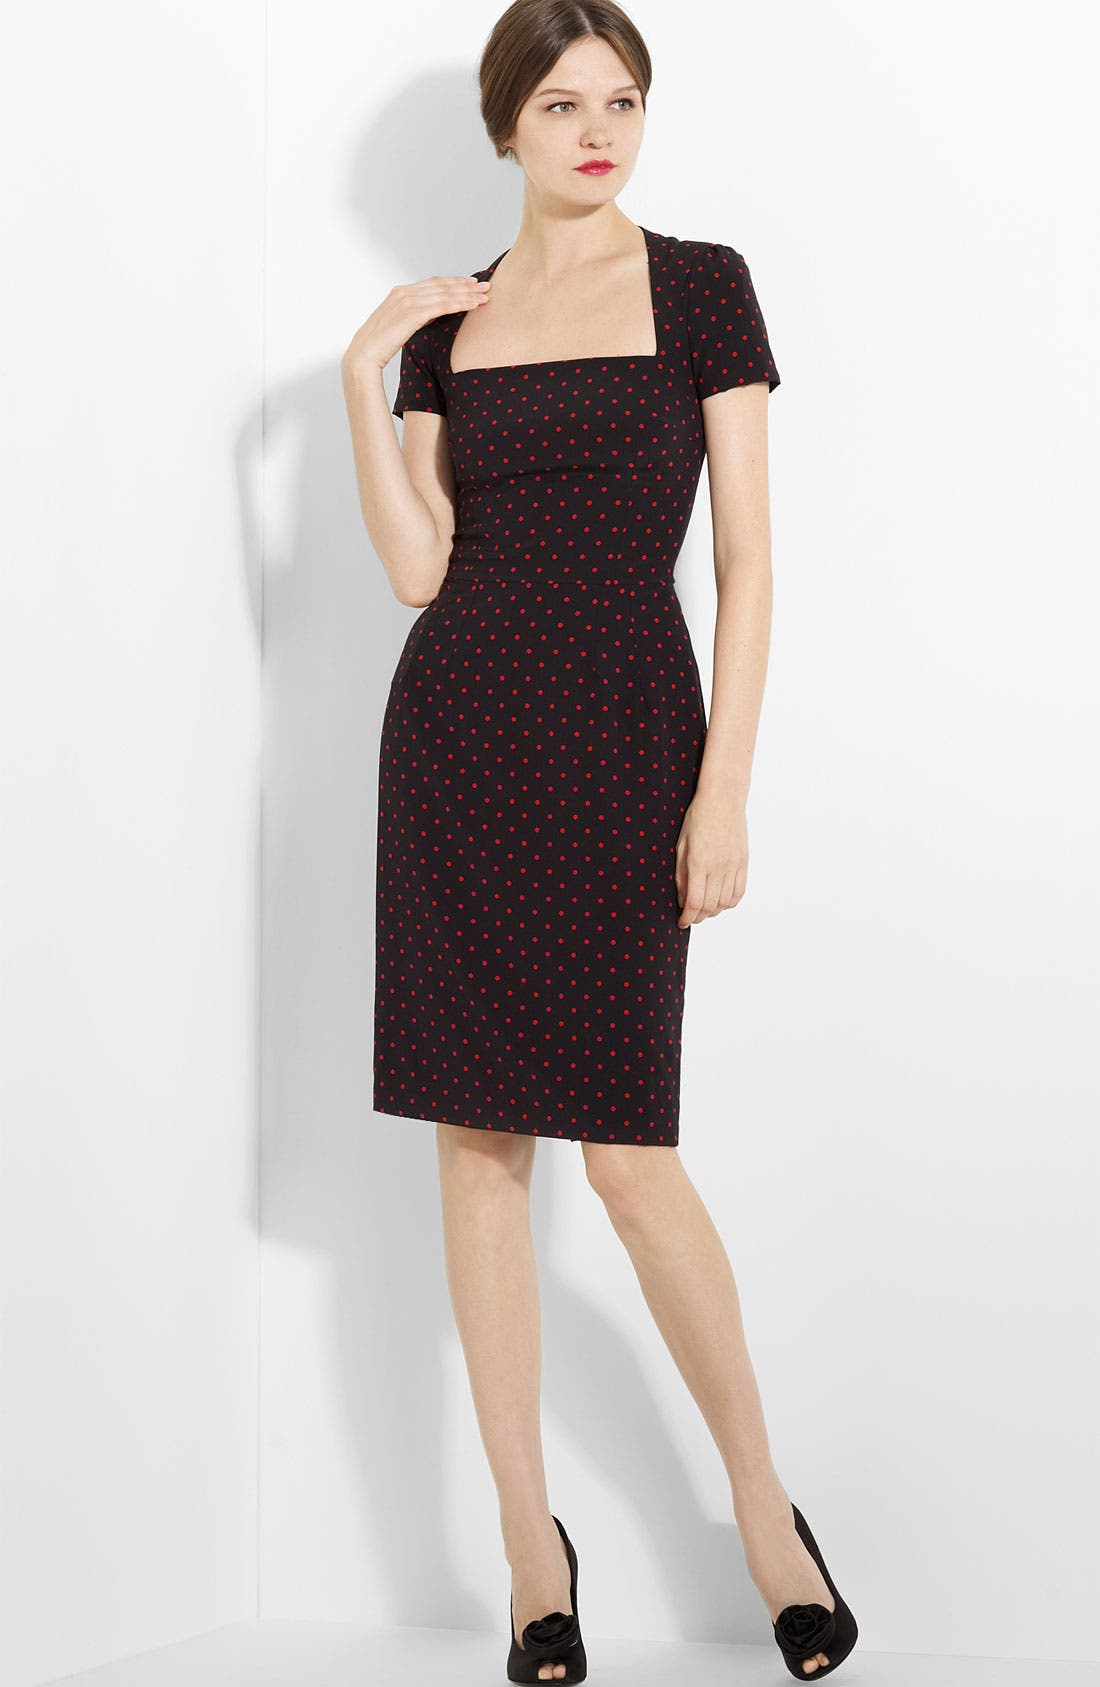 Alternate Image 1 Selected - Dolce&Gabbana Polka Dot Stretch Charmeuse Dress